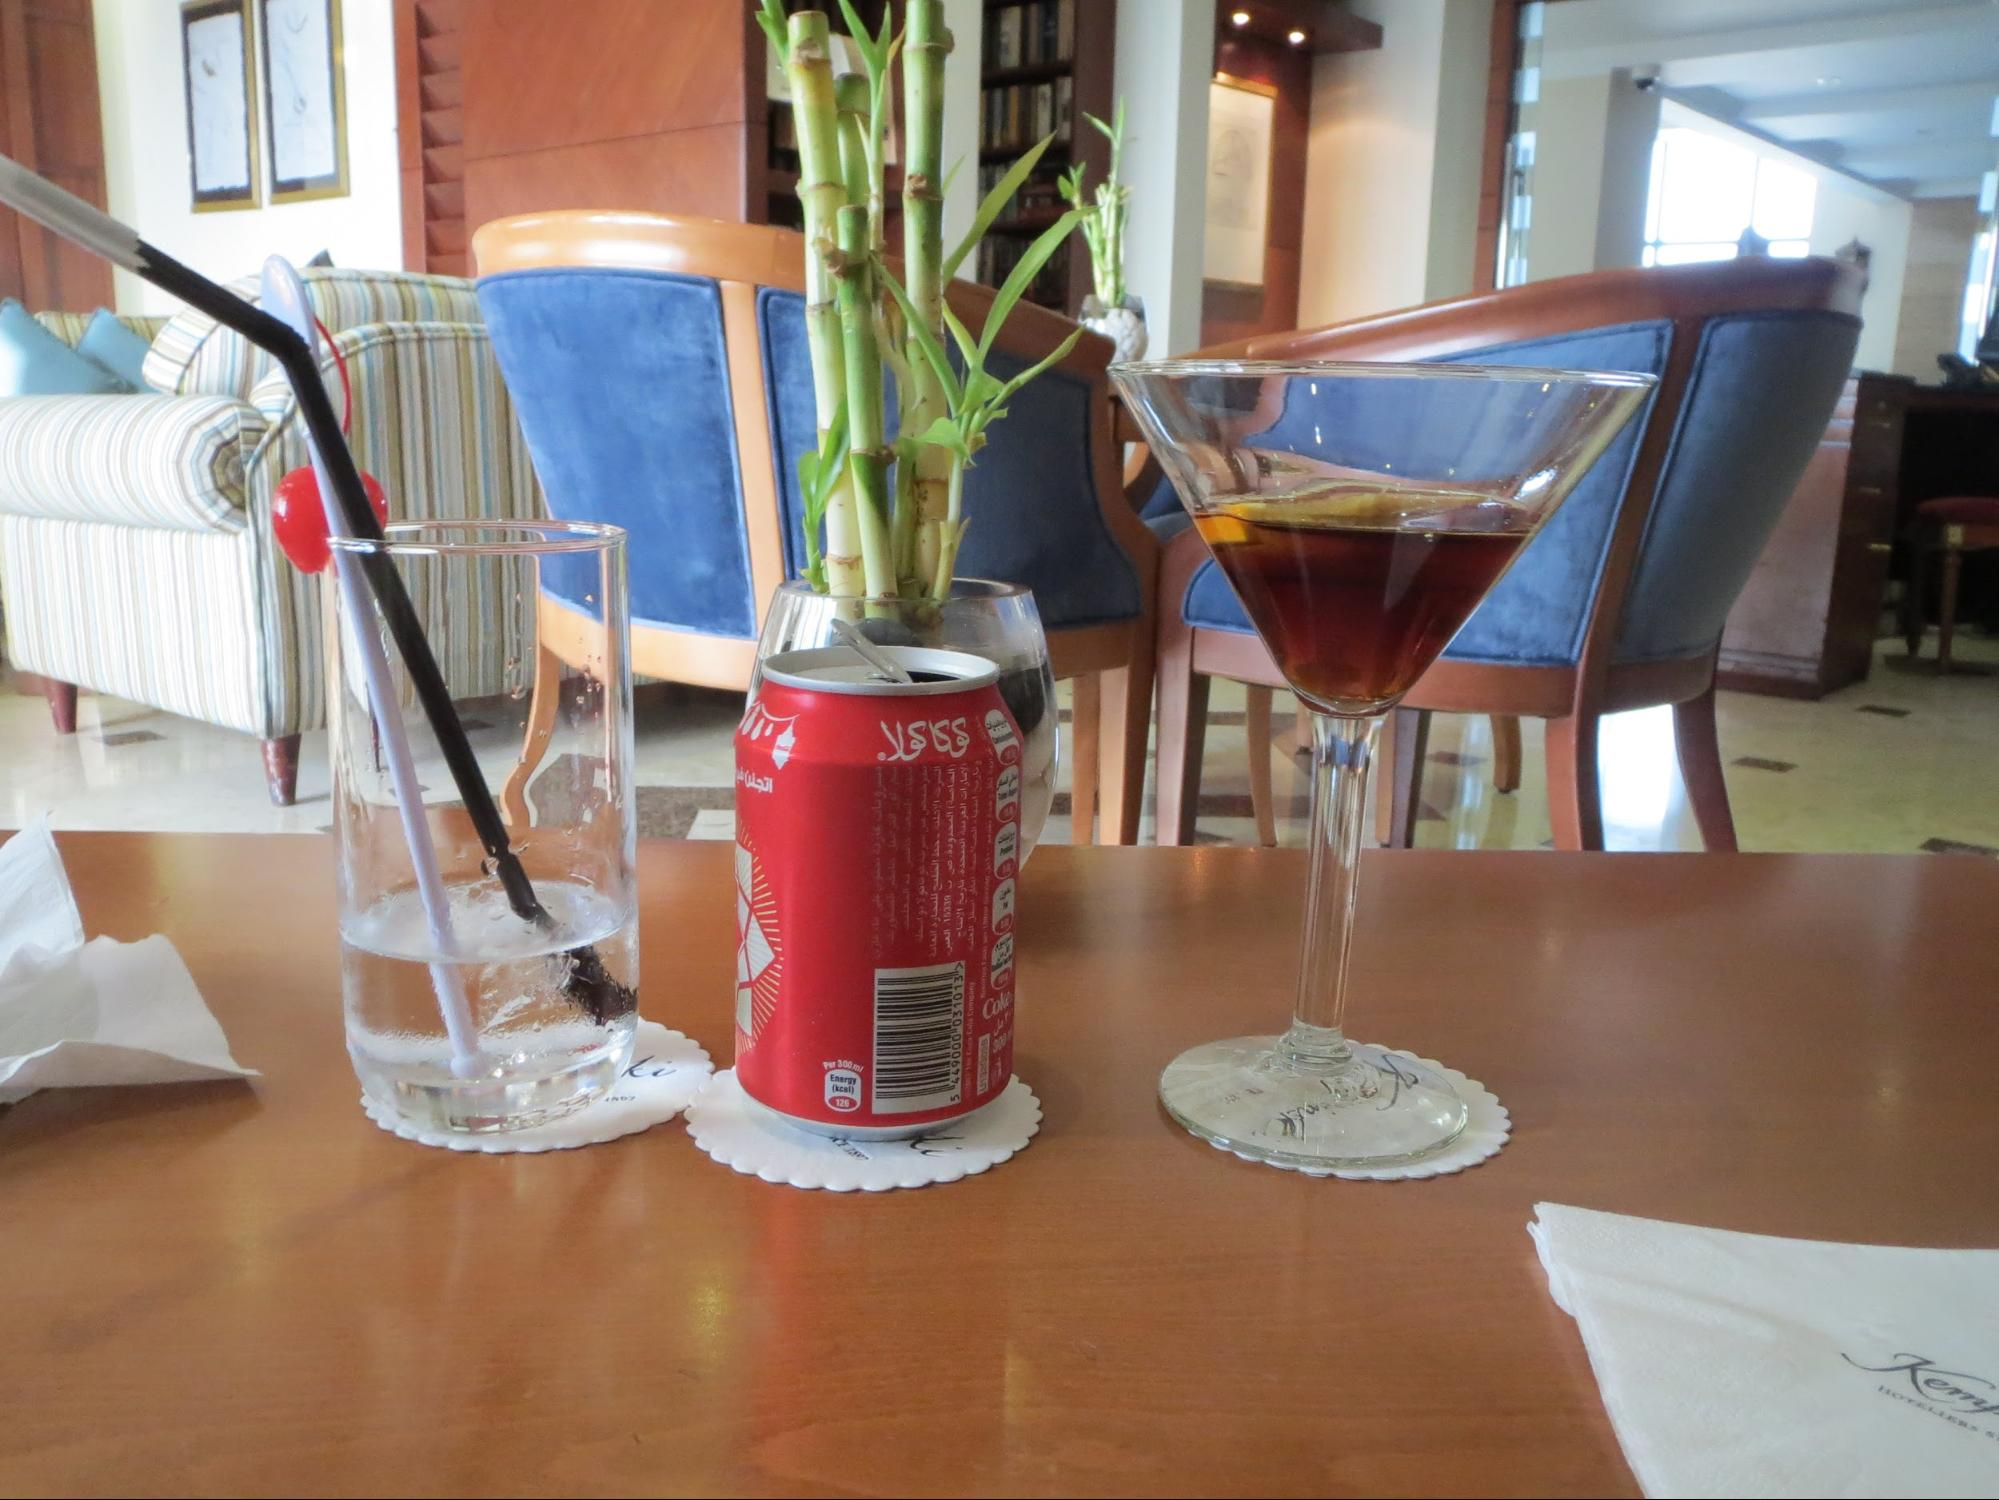 Kempinski Hotel, Ajman Review - K lounge drink and eat for Free - Alcoholic Beverages